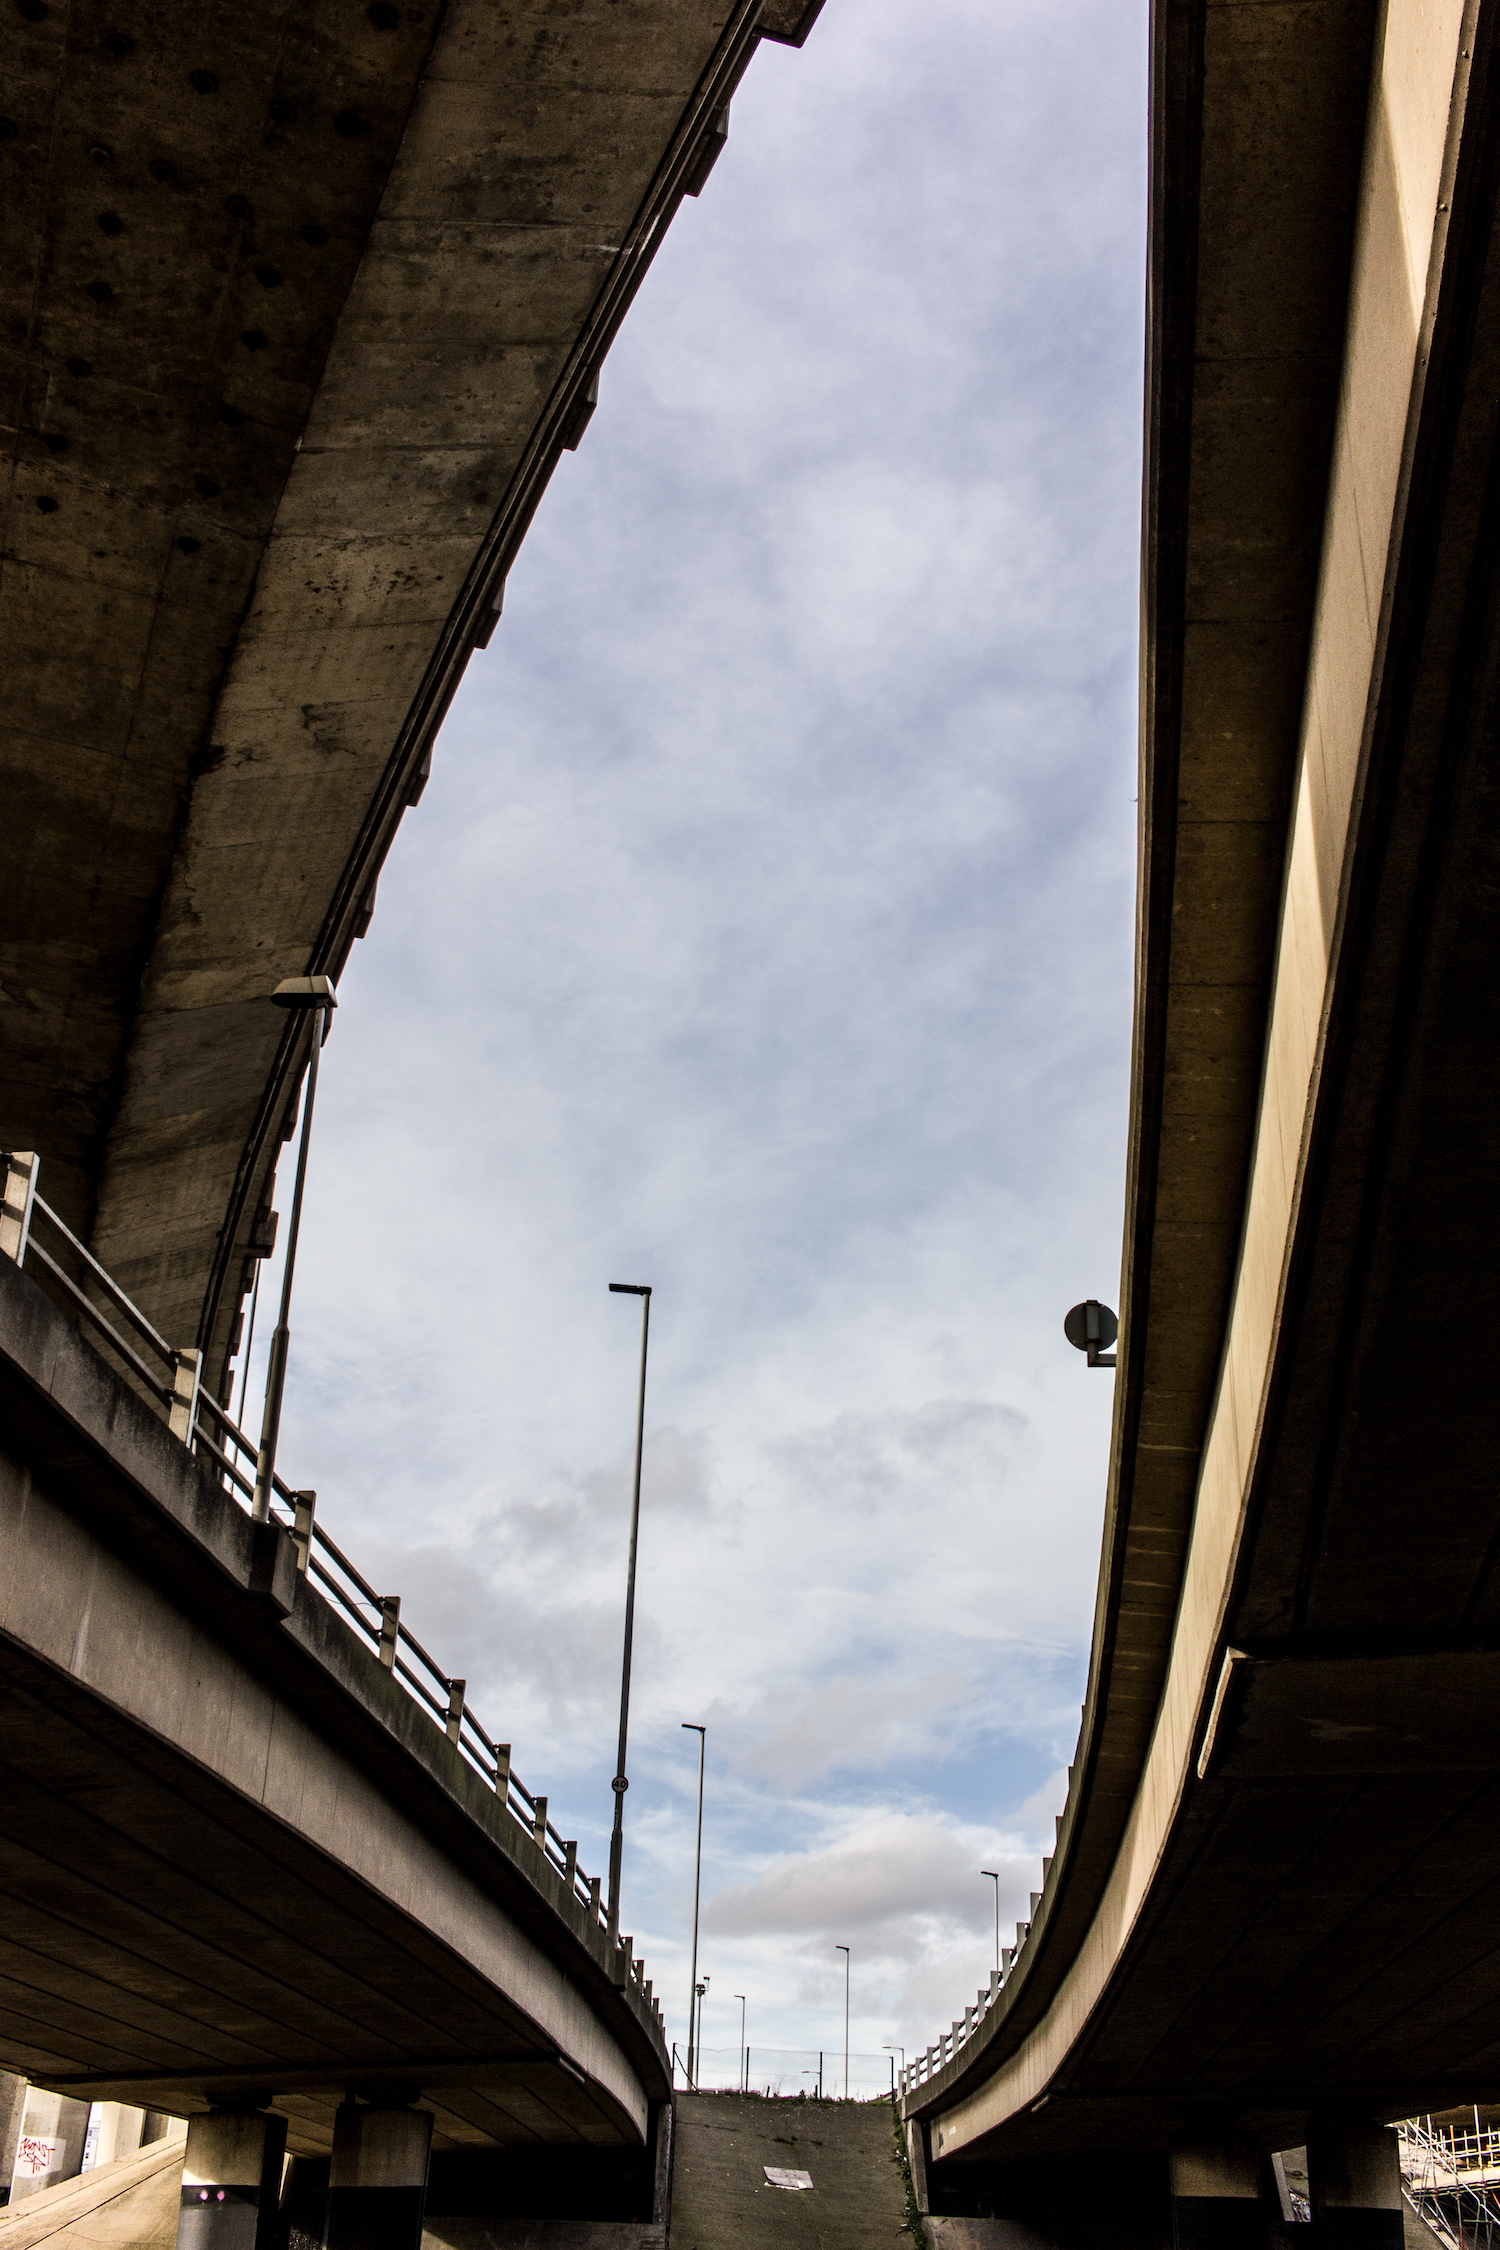 Professional Photography Concrete Roundabout In South Woodford North East London With Three Overpasses And Blue Sky